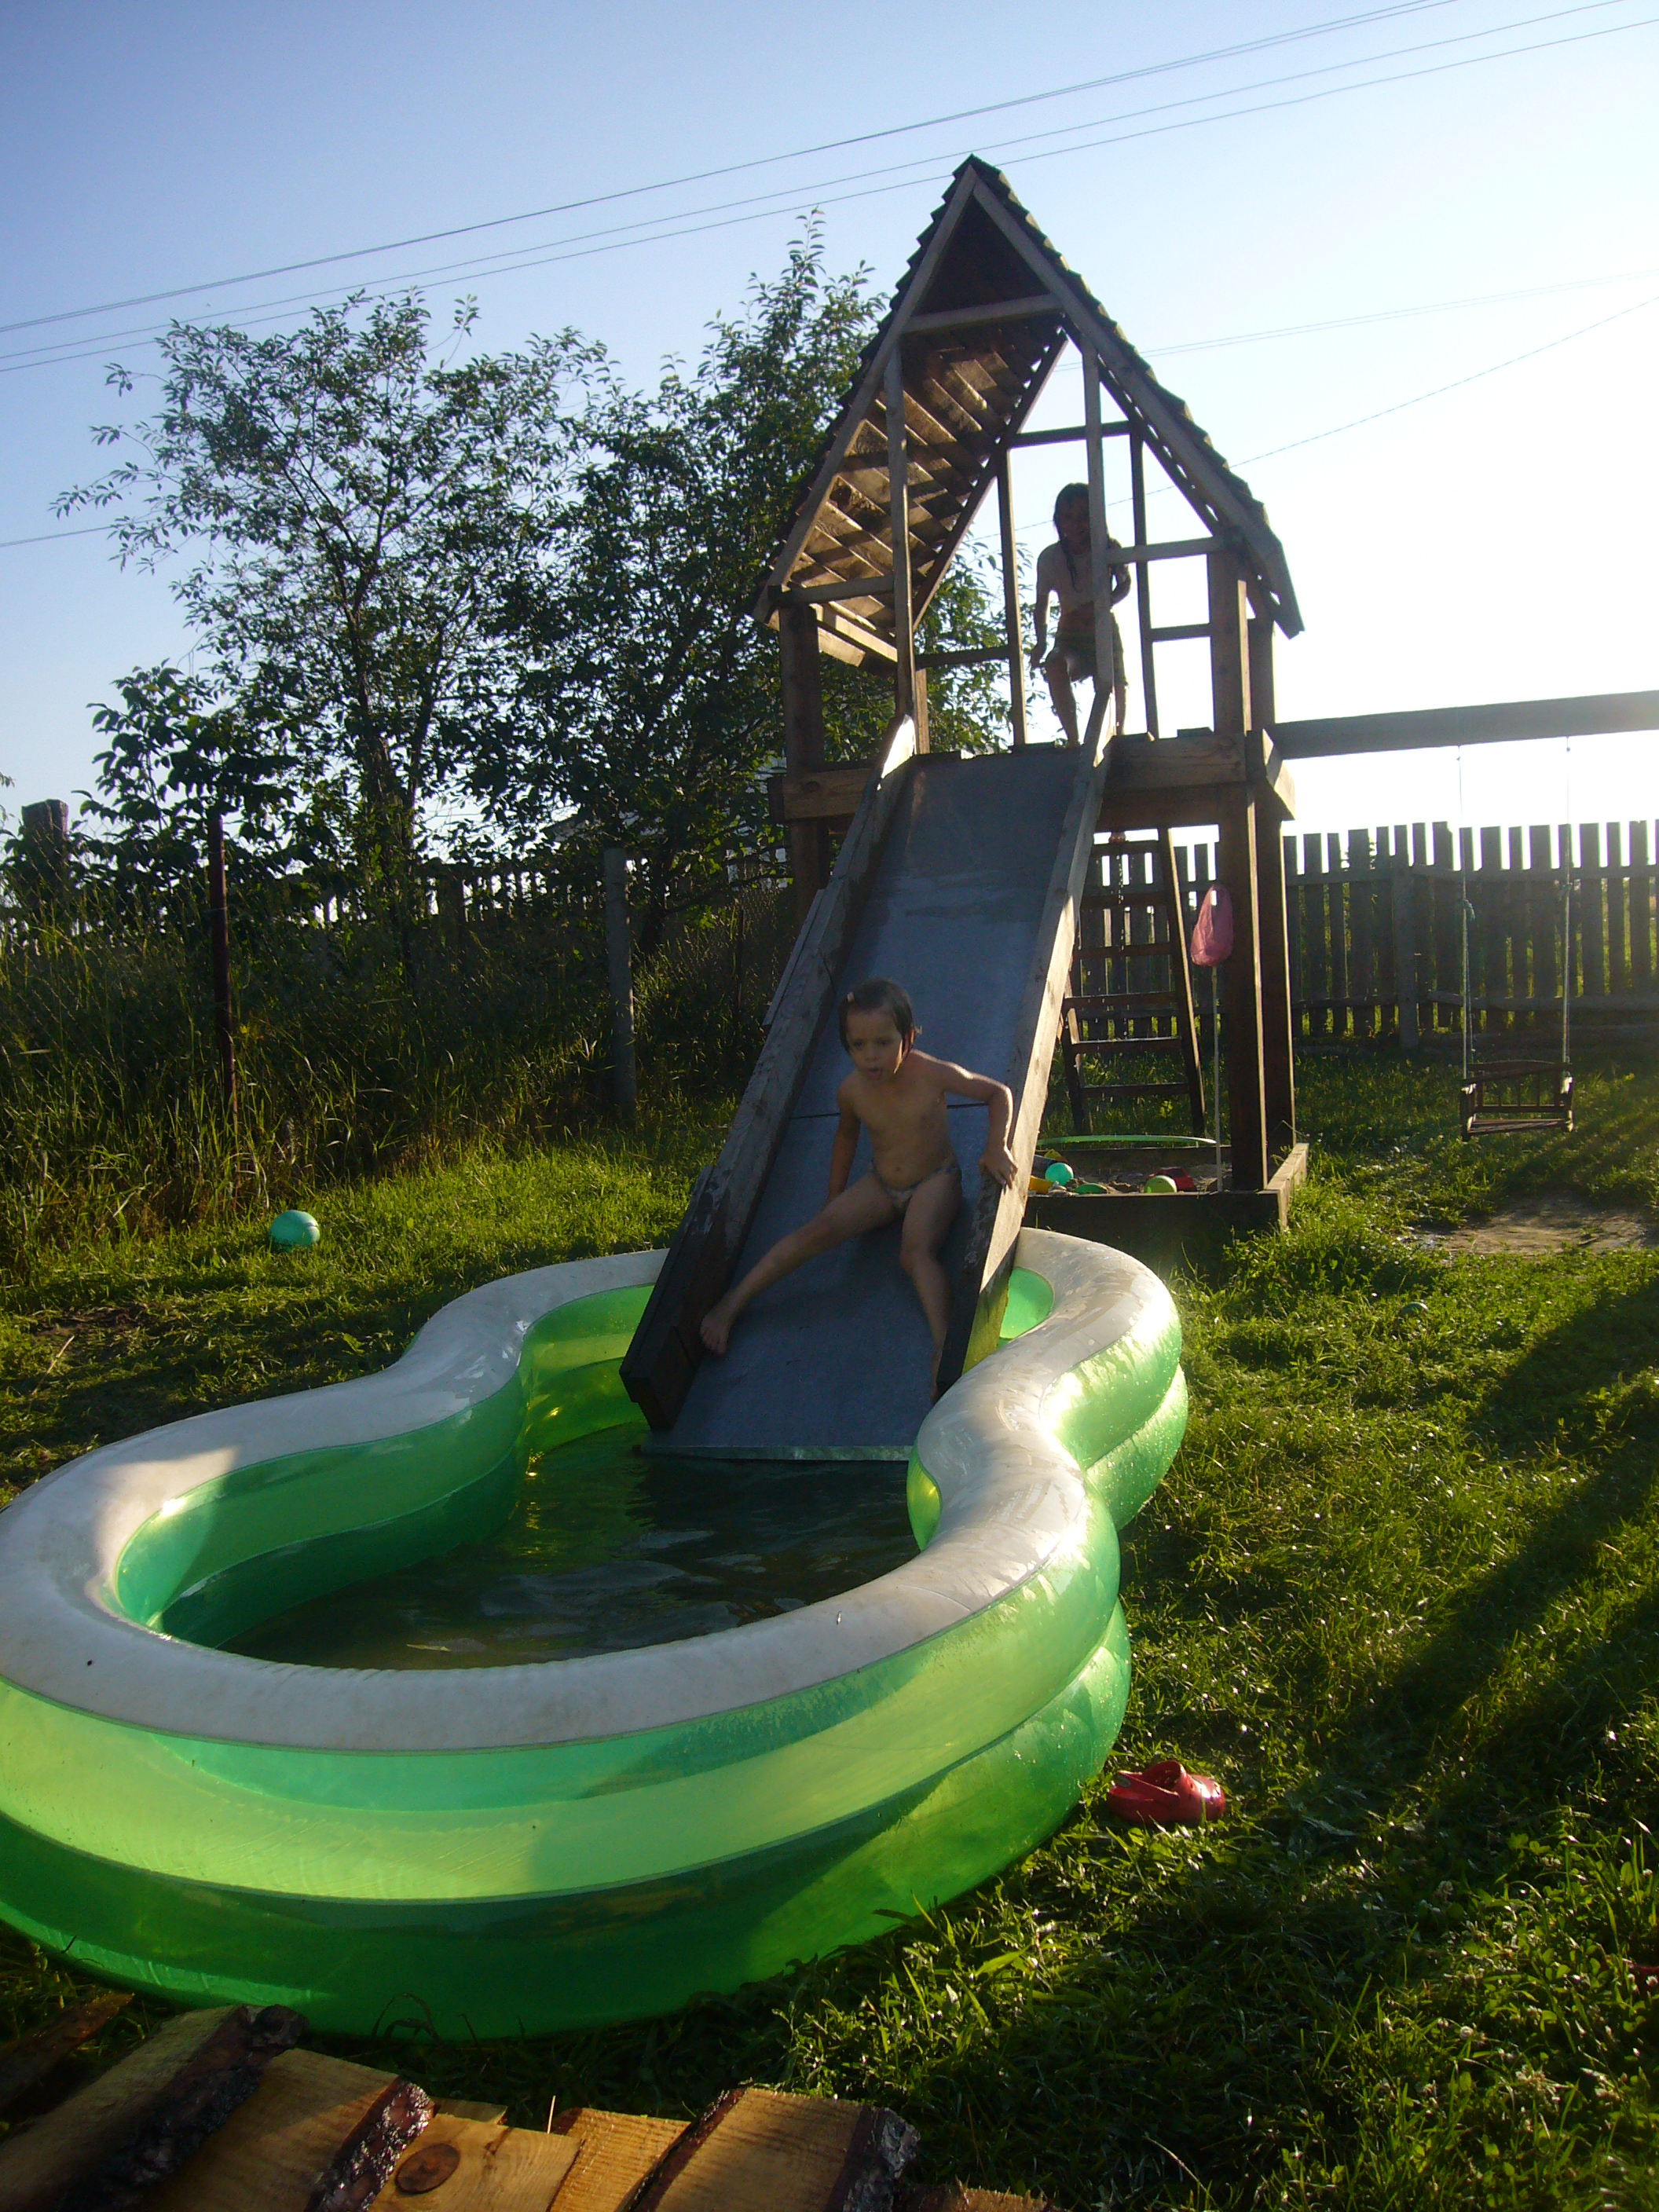 Slide and pool diy crafts decoupage ideas recycled crafts diy project wood playhouse with slide solutioingenieria Image collections